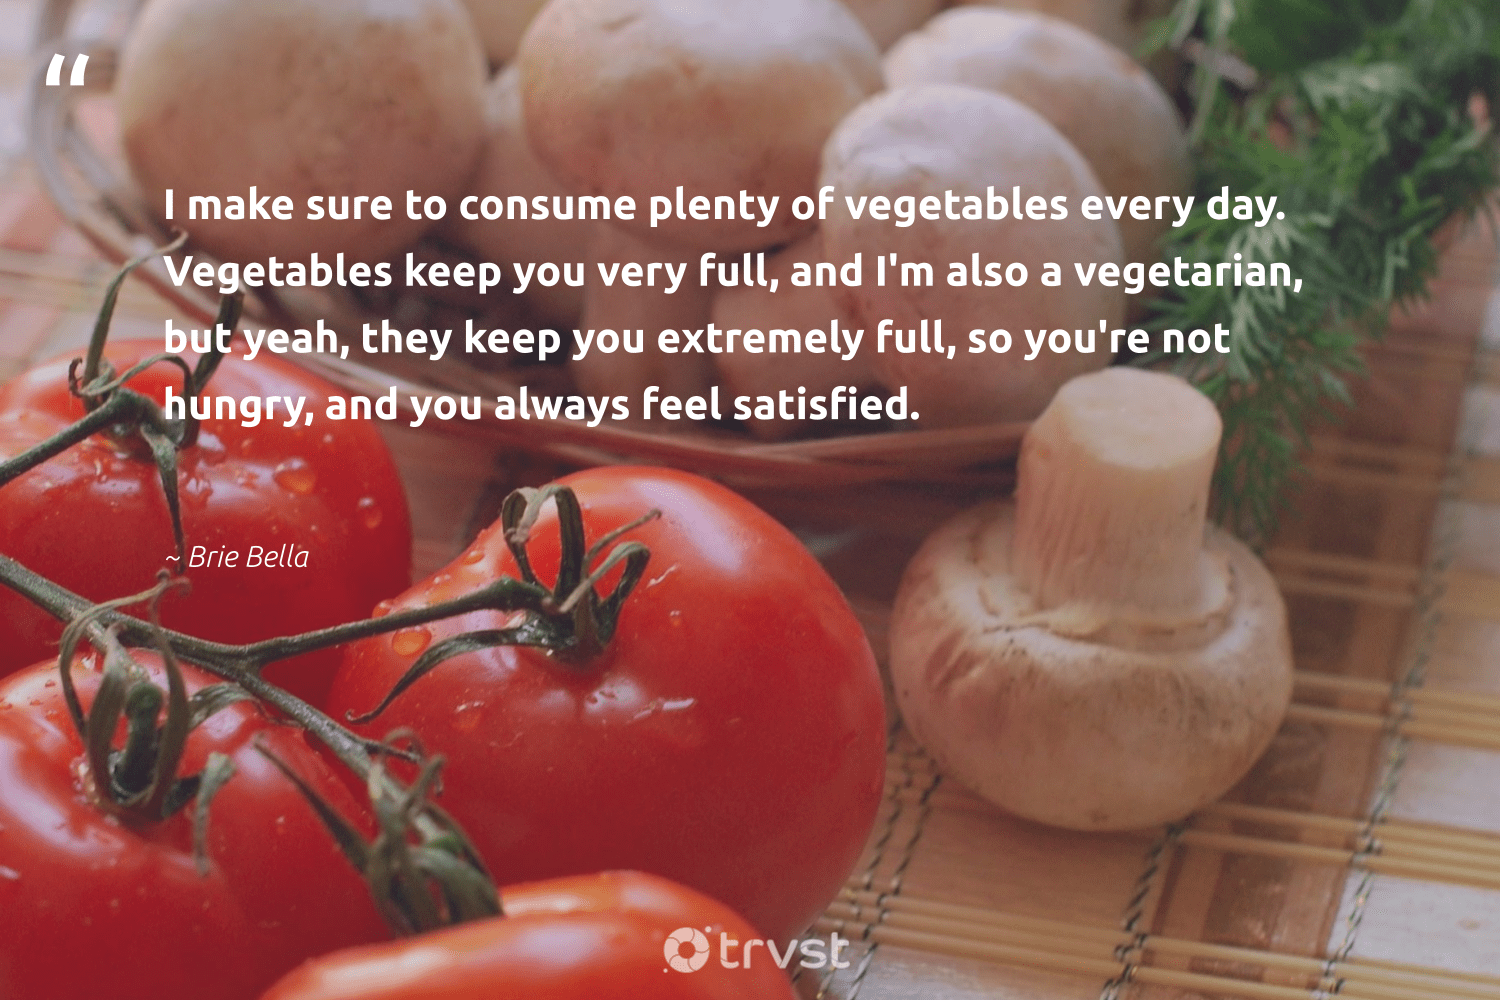 """""""I make sure to consume plenty of vegetables every day. Vegetables keep you very full, and I'm also a vegetarian, but yeah, they keep you extremely full, so you're not hungry, and you always feel satisfied.""""  - Brie Bella #trvst #quotes #hungry #vegetarian #foodforthepoor #gogreen #makeadifference #beinspired #hunger #bethechange #equalrights #impact"""